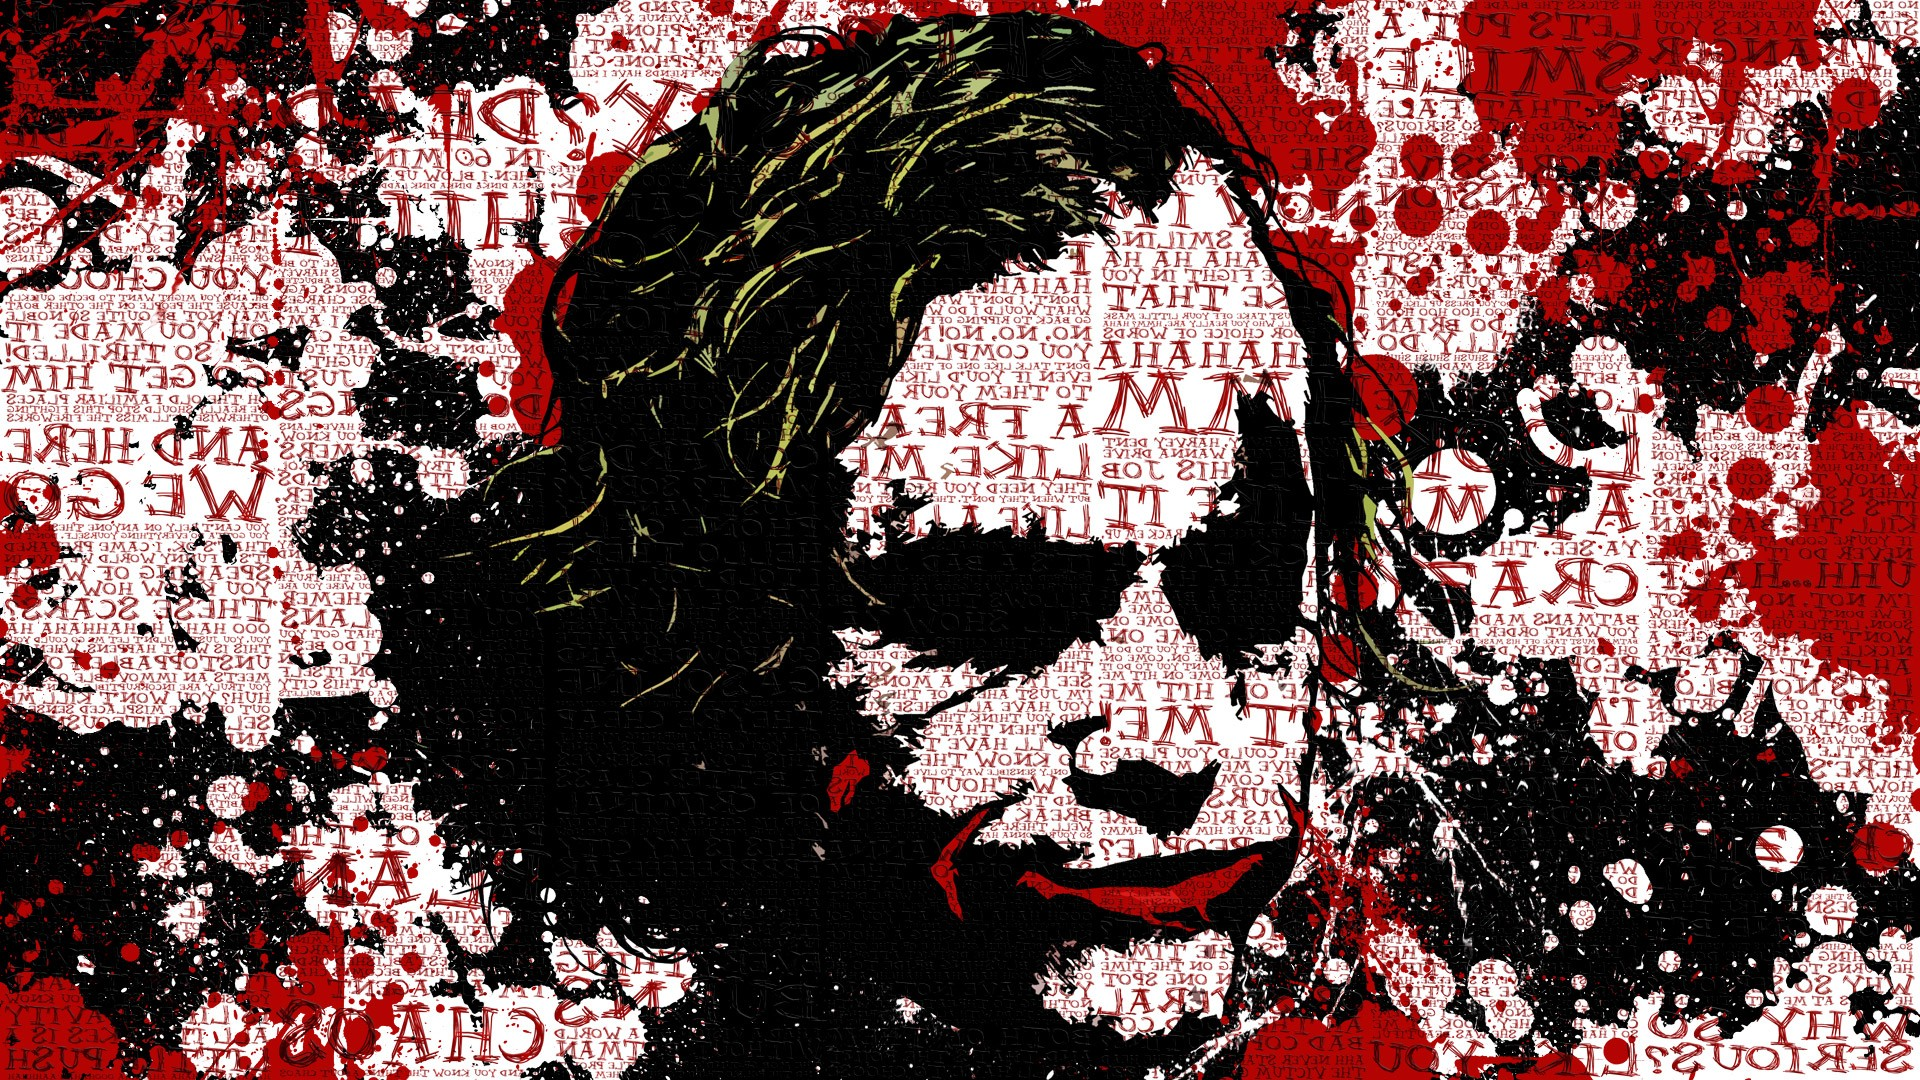 Batman Joker Quotes Mobile Wallpaper Batman Anime Movies Paint Splatter Typography The